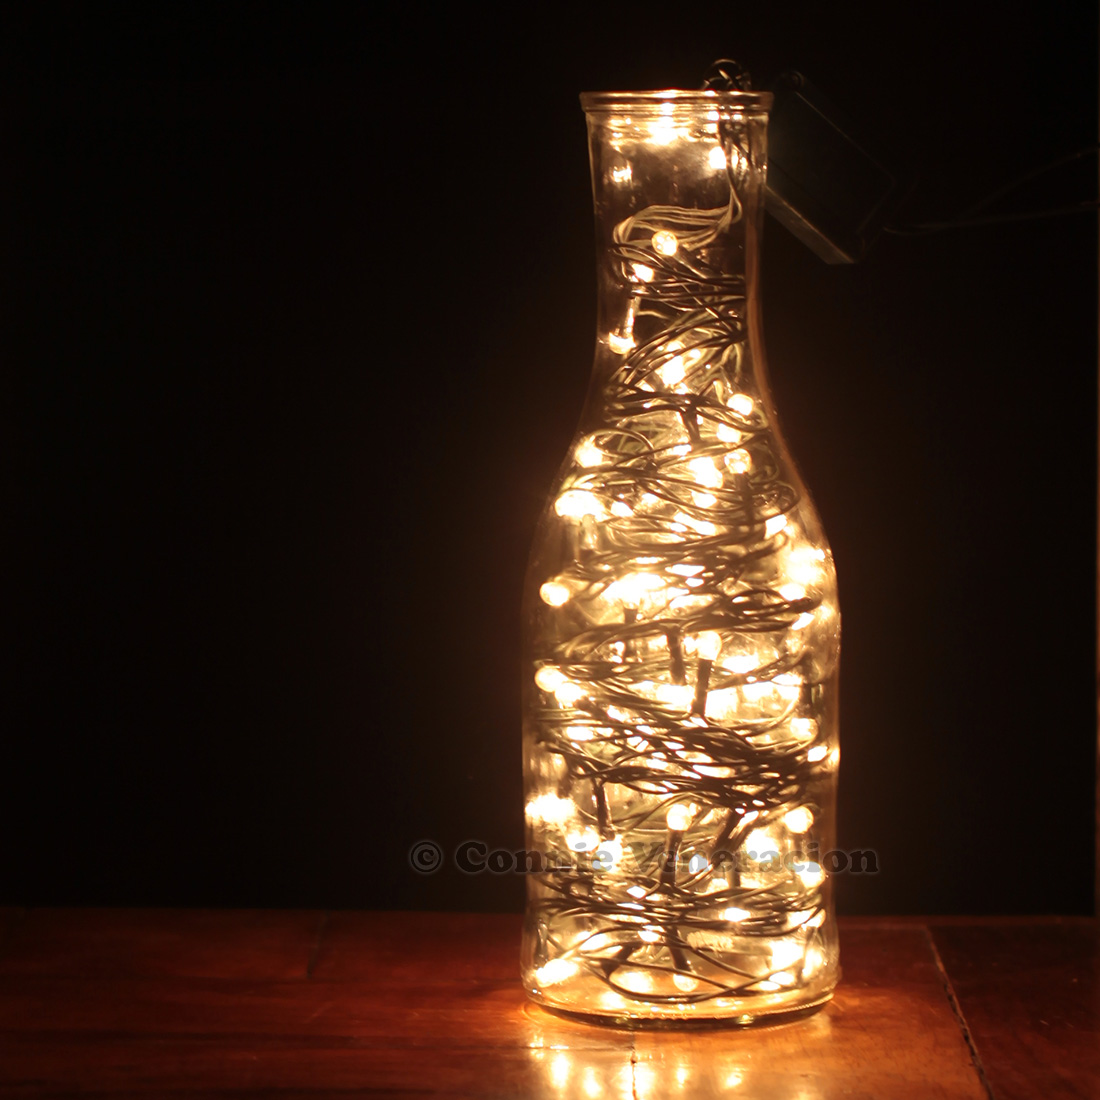 Blinking Christmas lights inside a bottle